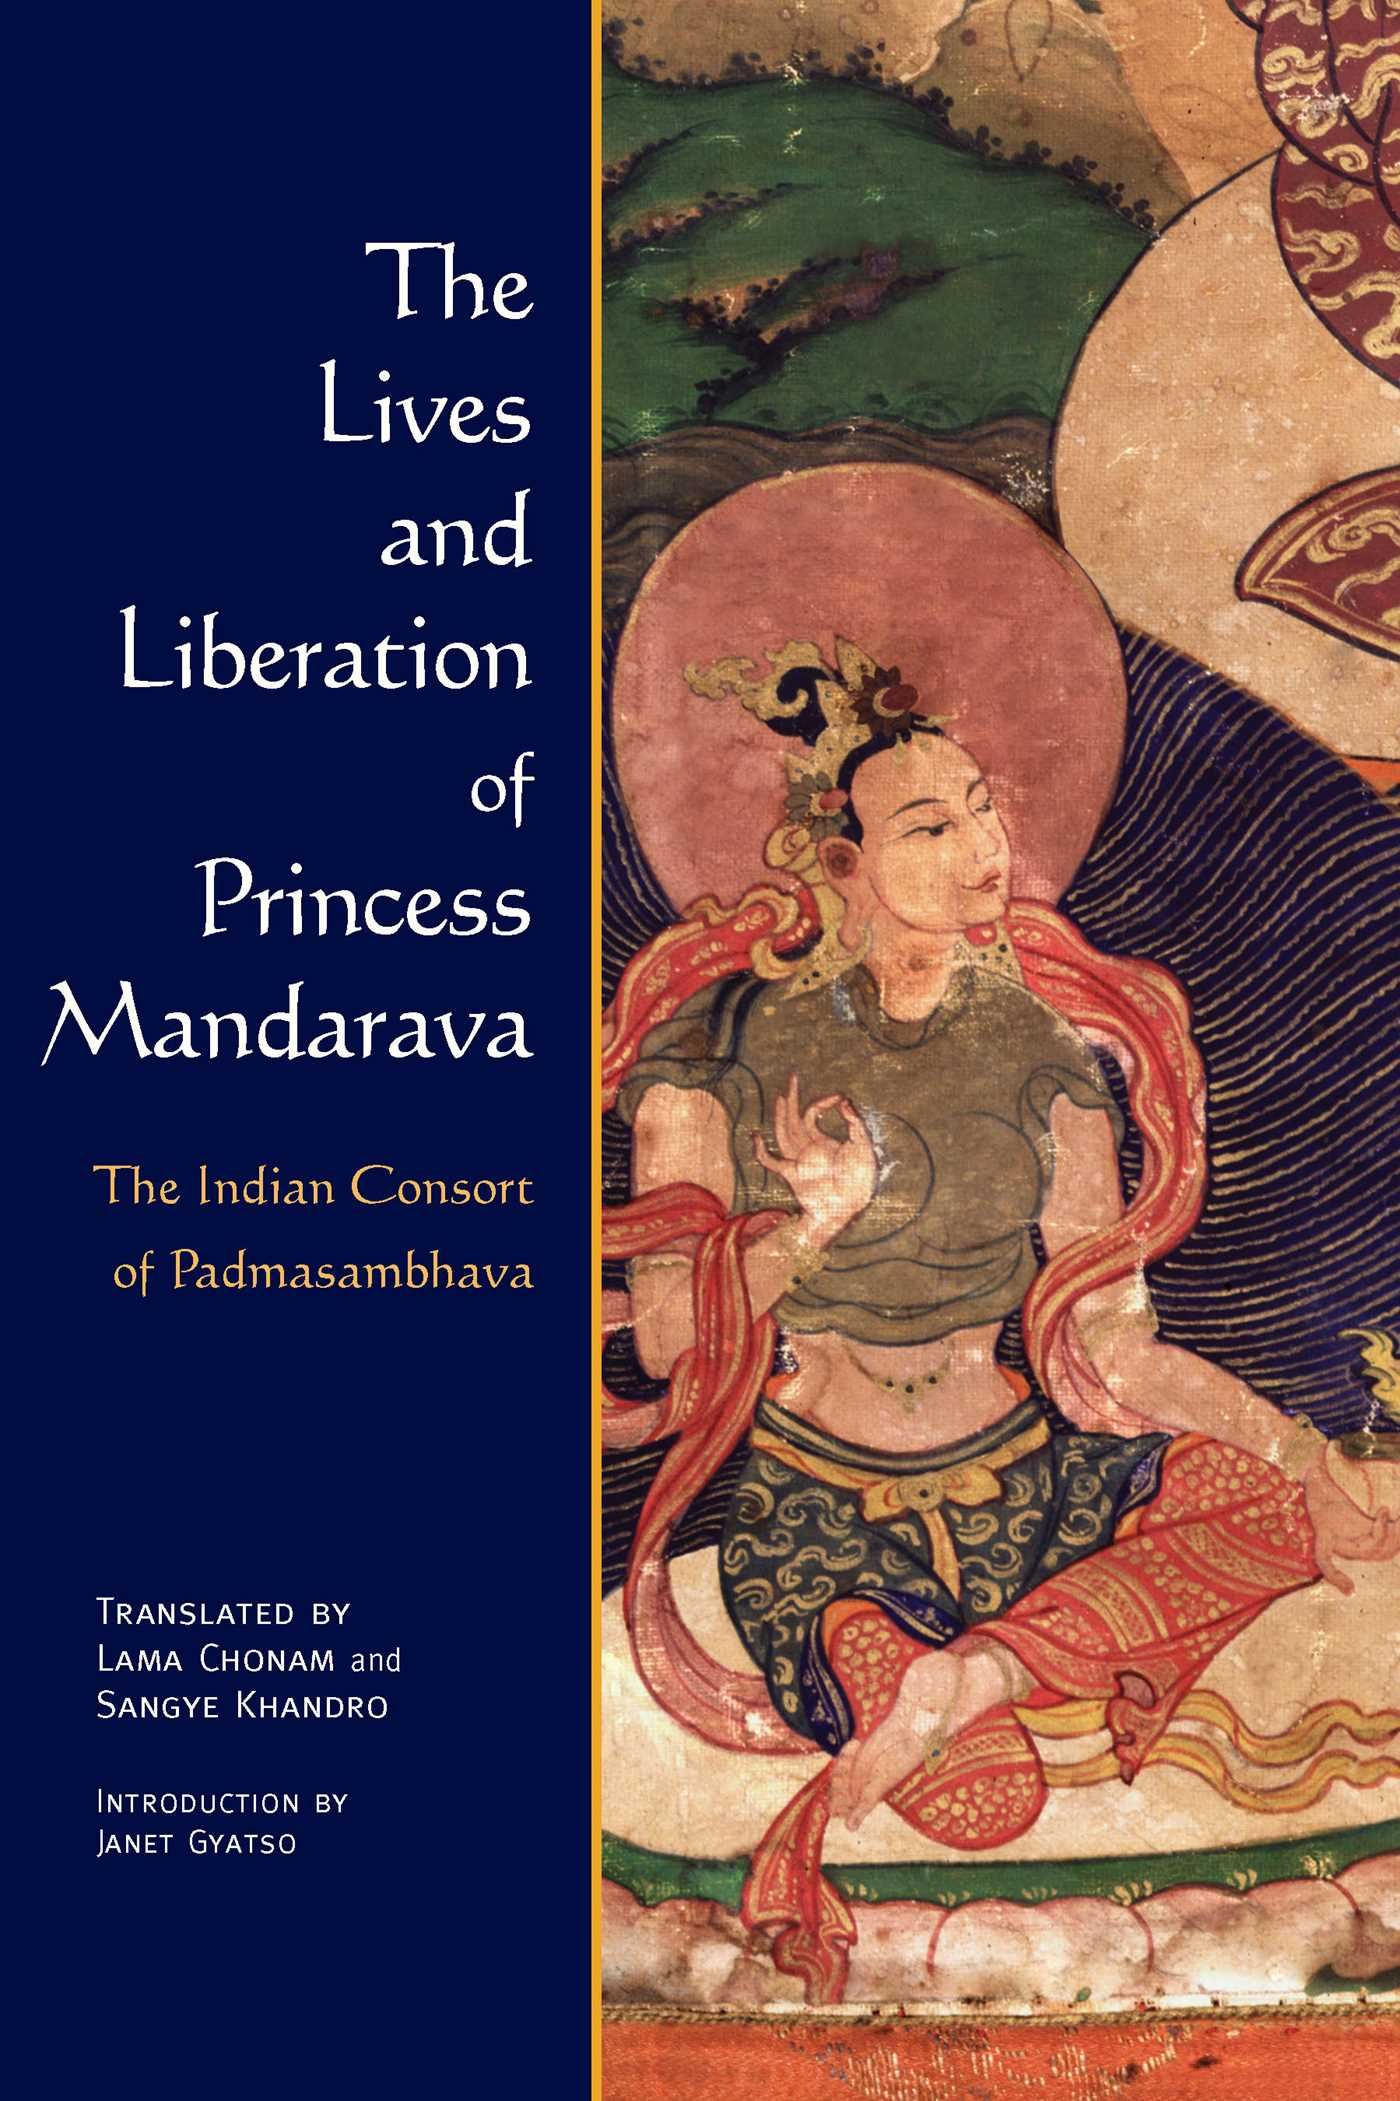 The lives and liberation of princess mandarava 9780861711444 hr